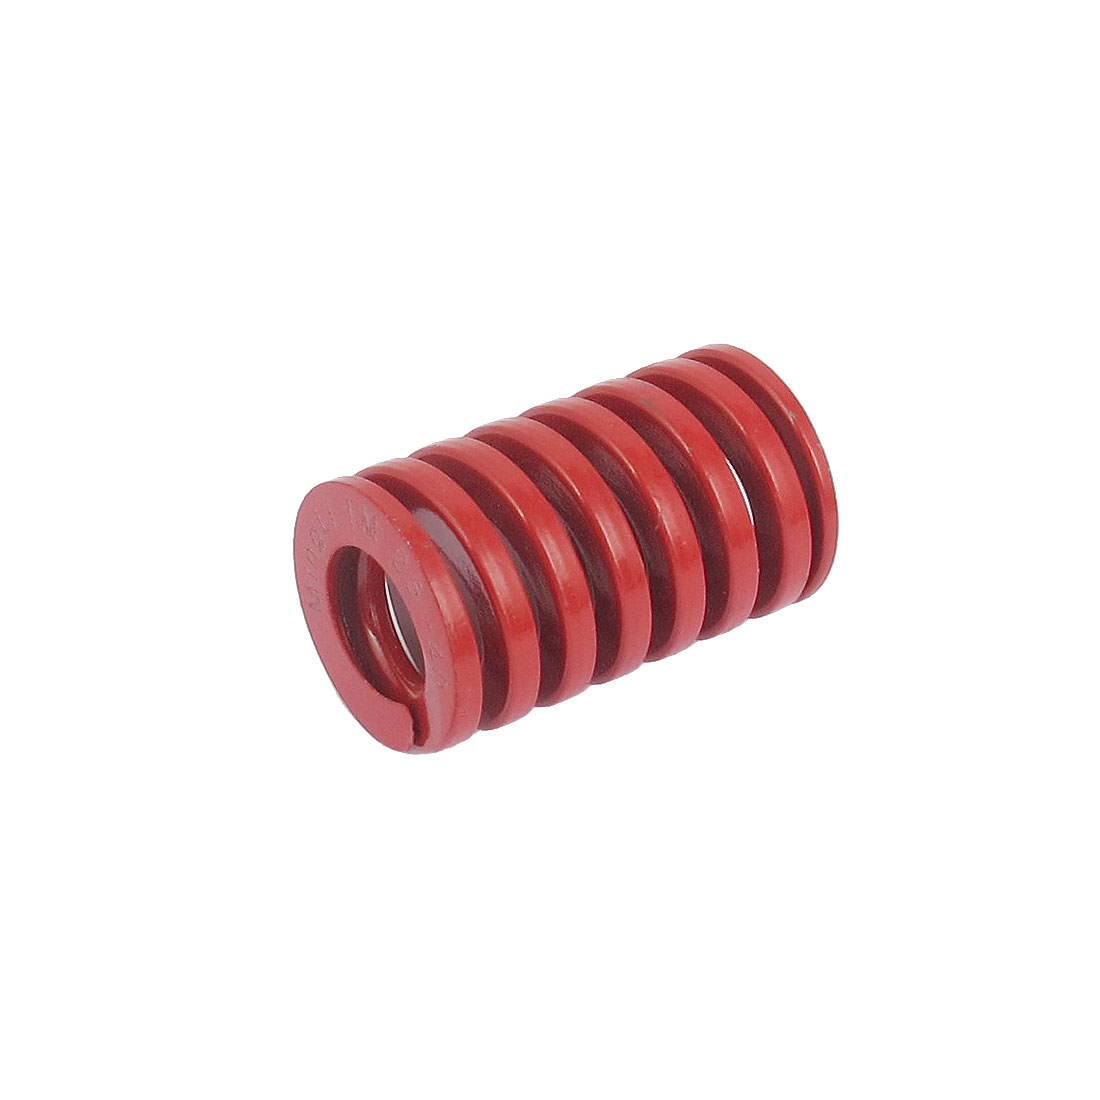 25mm OD 40mm Long Medium Load Spiral Stamping Compression Die Spring Red